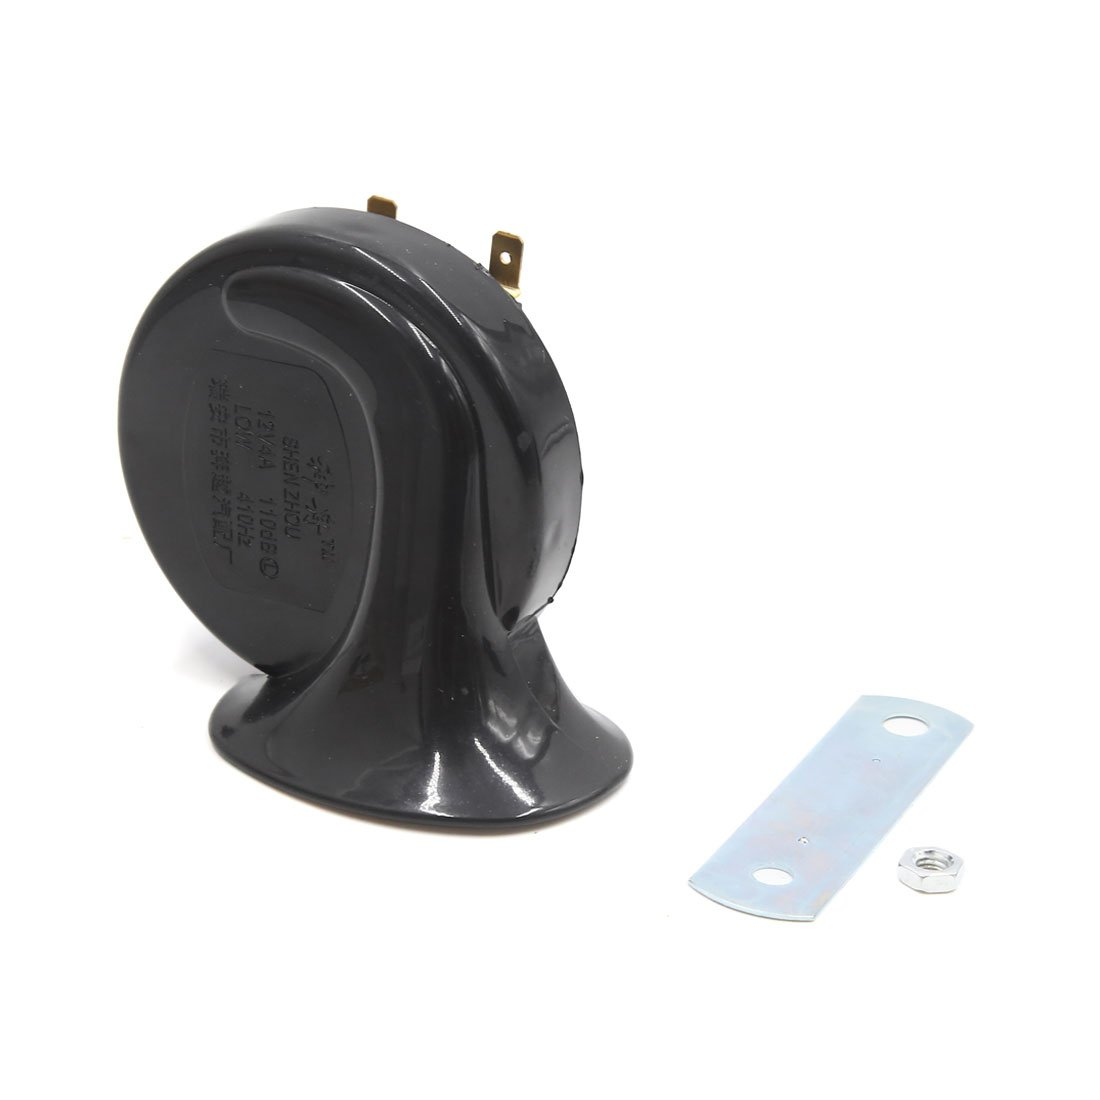 uxcell 12V 110dB 410Hz Snail Shaped Loud Electric Air Horn Siren for Car Motorcycle